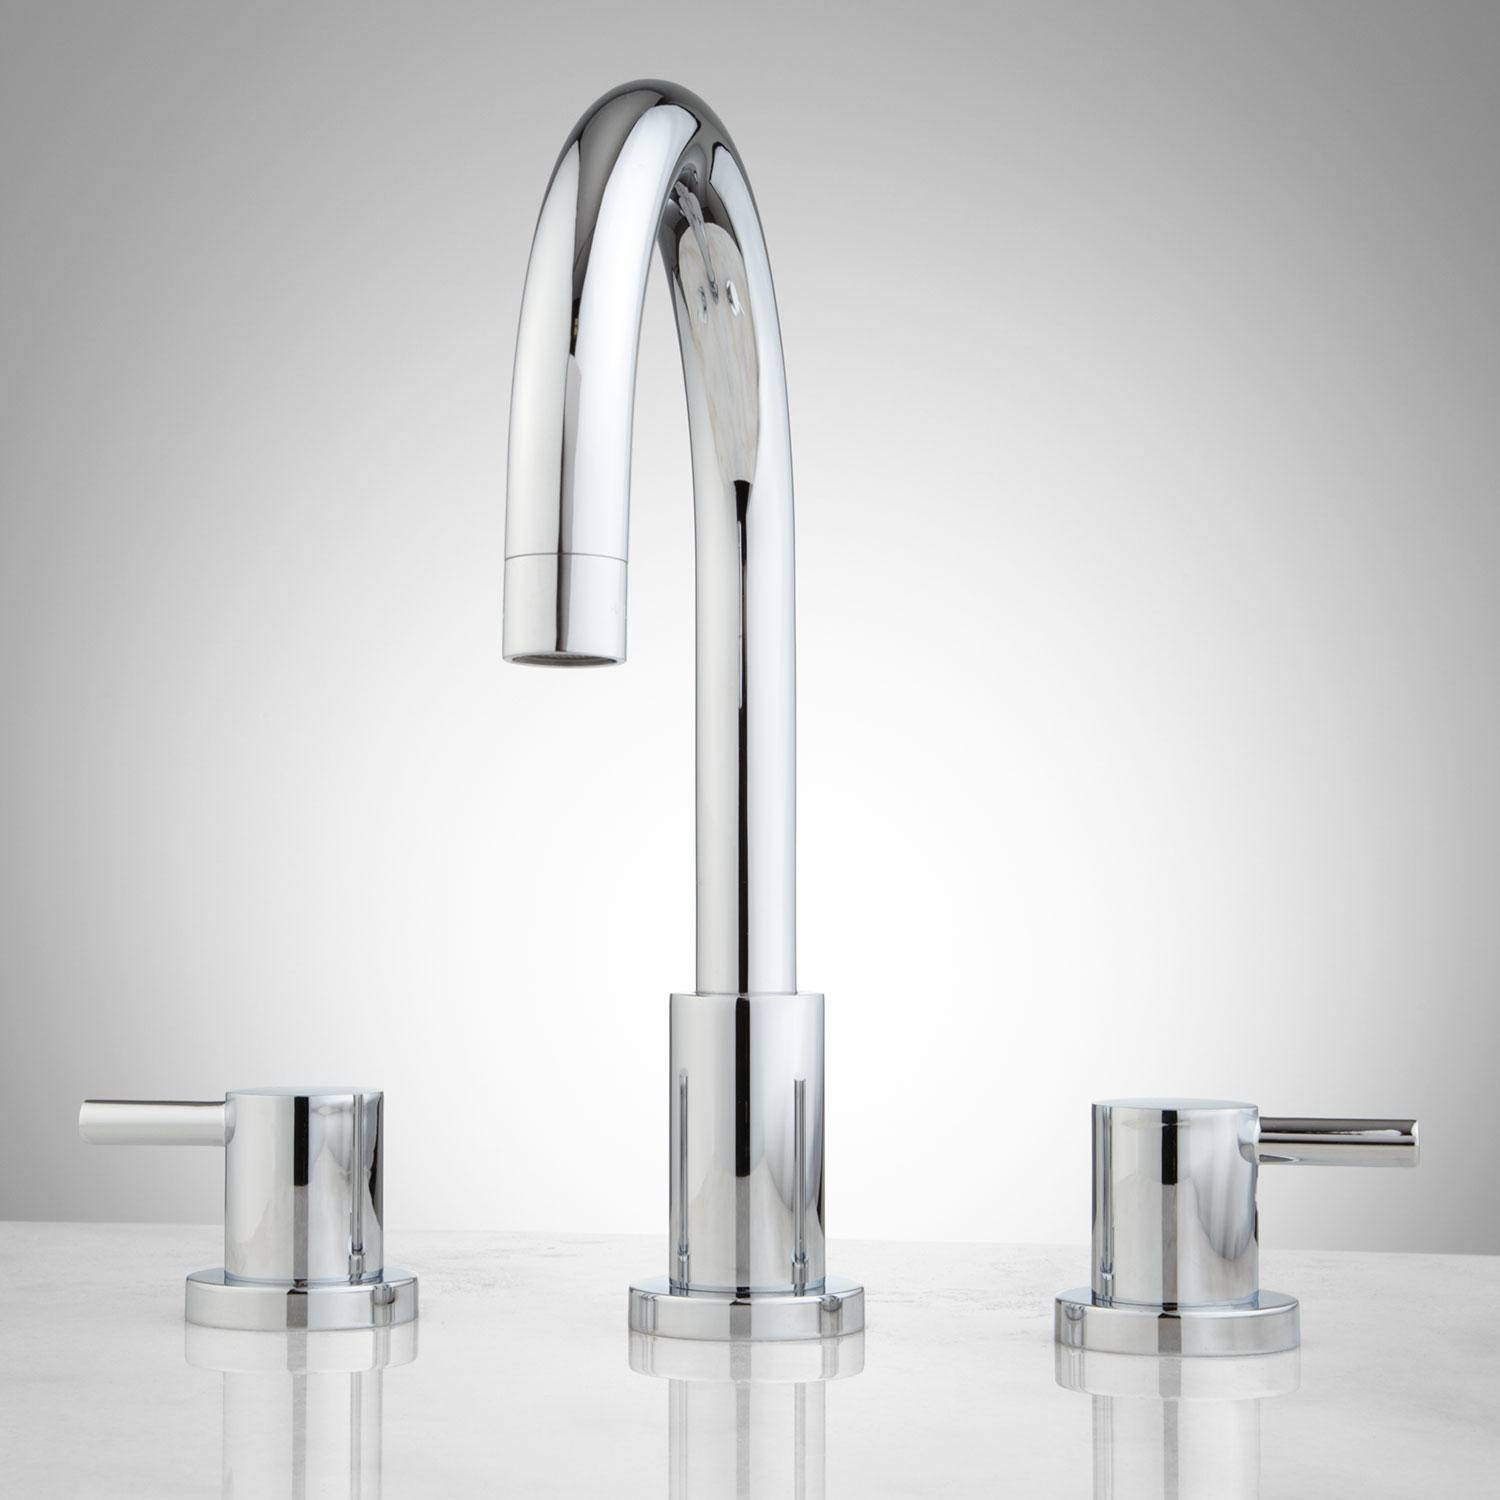 Ideas, kitchen sinks moen kitchen sink faucet installation moen faucets within sizing 1500 x 1500  .